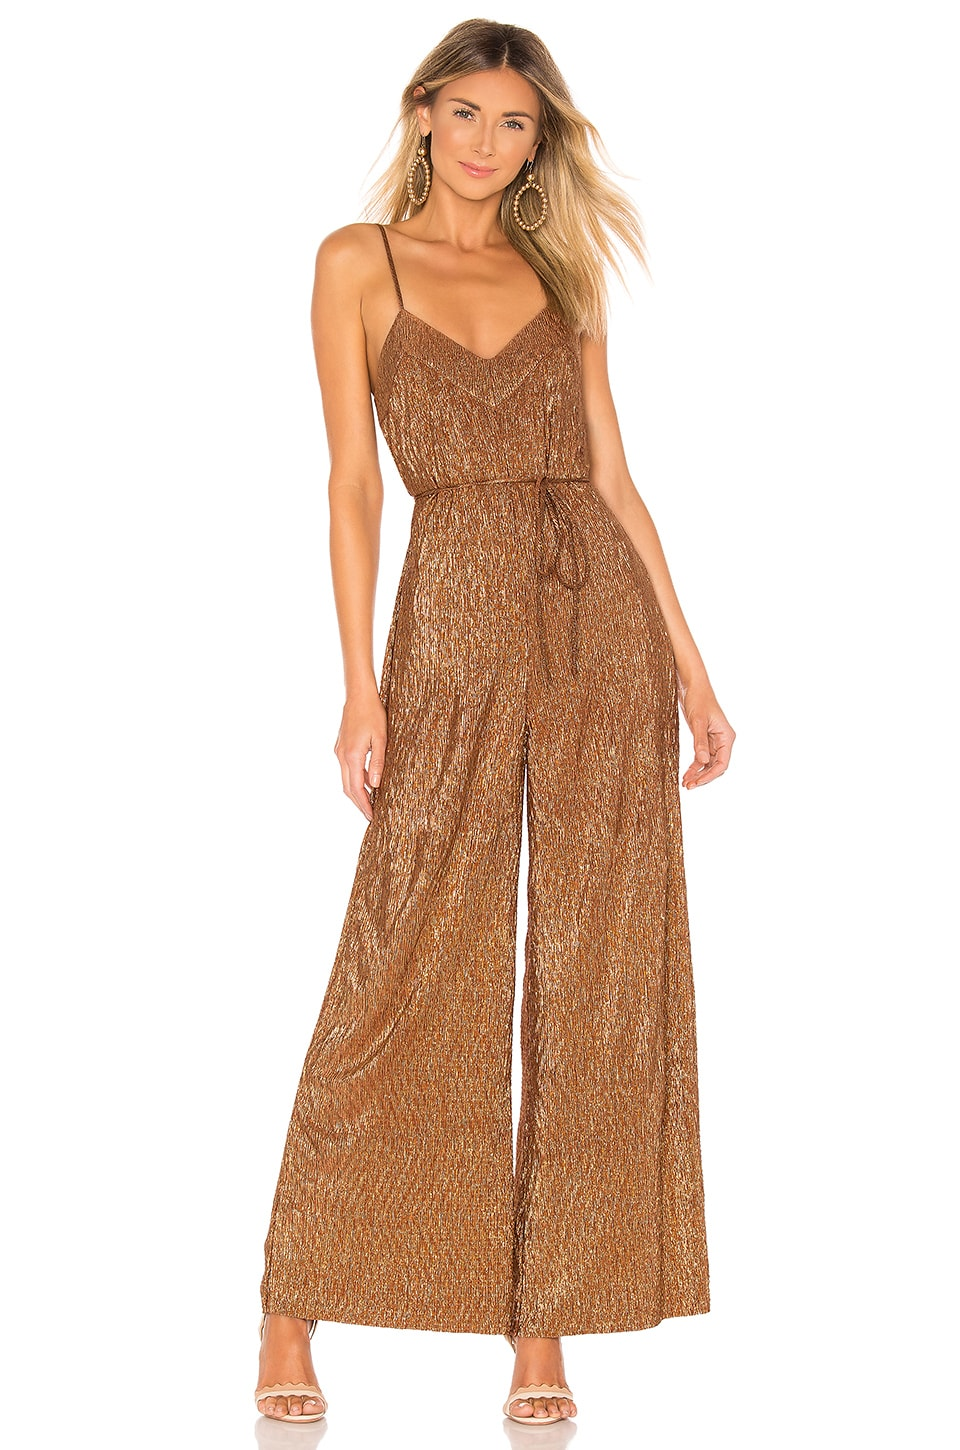 House of Harlow 1960 x REOLVE Karel Jumpsuit in Bronze